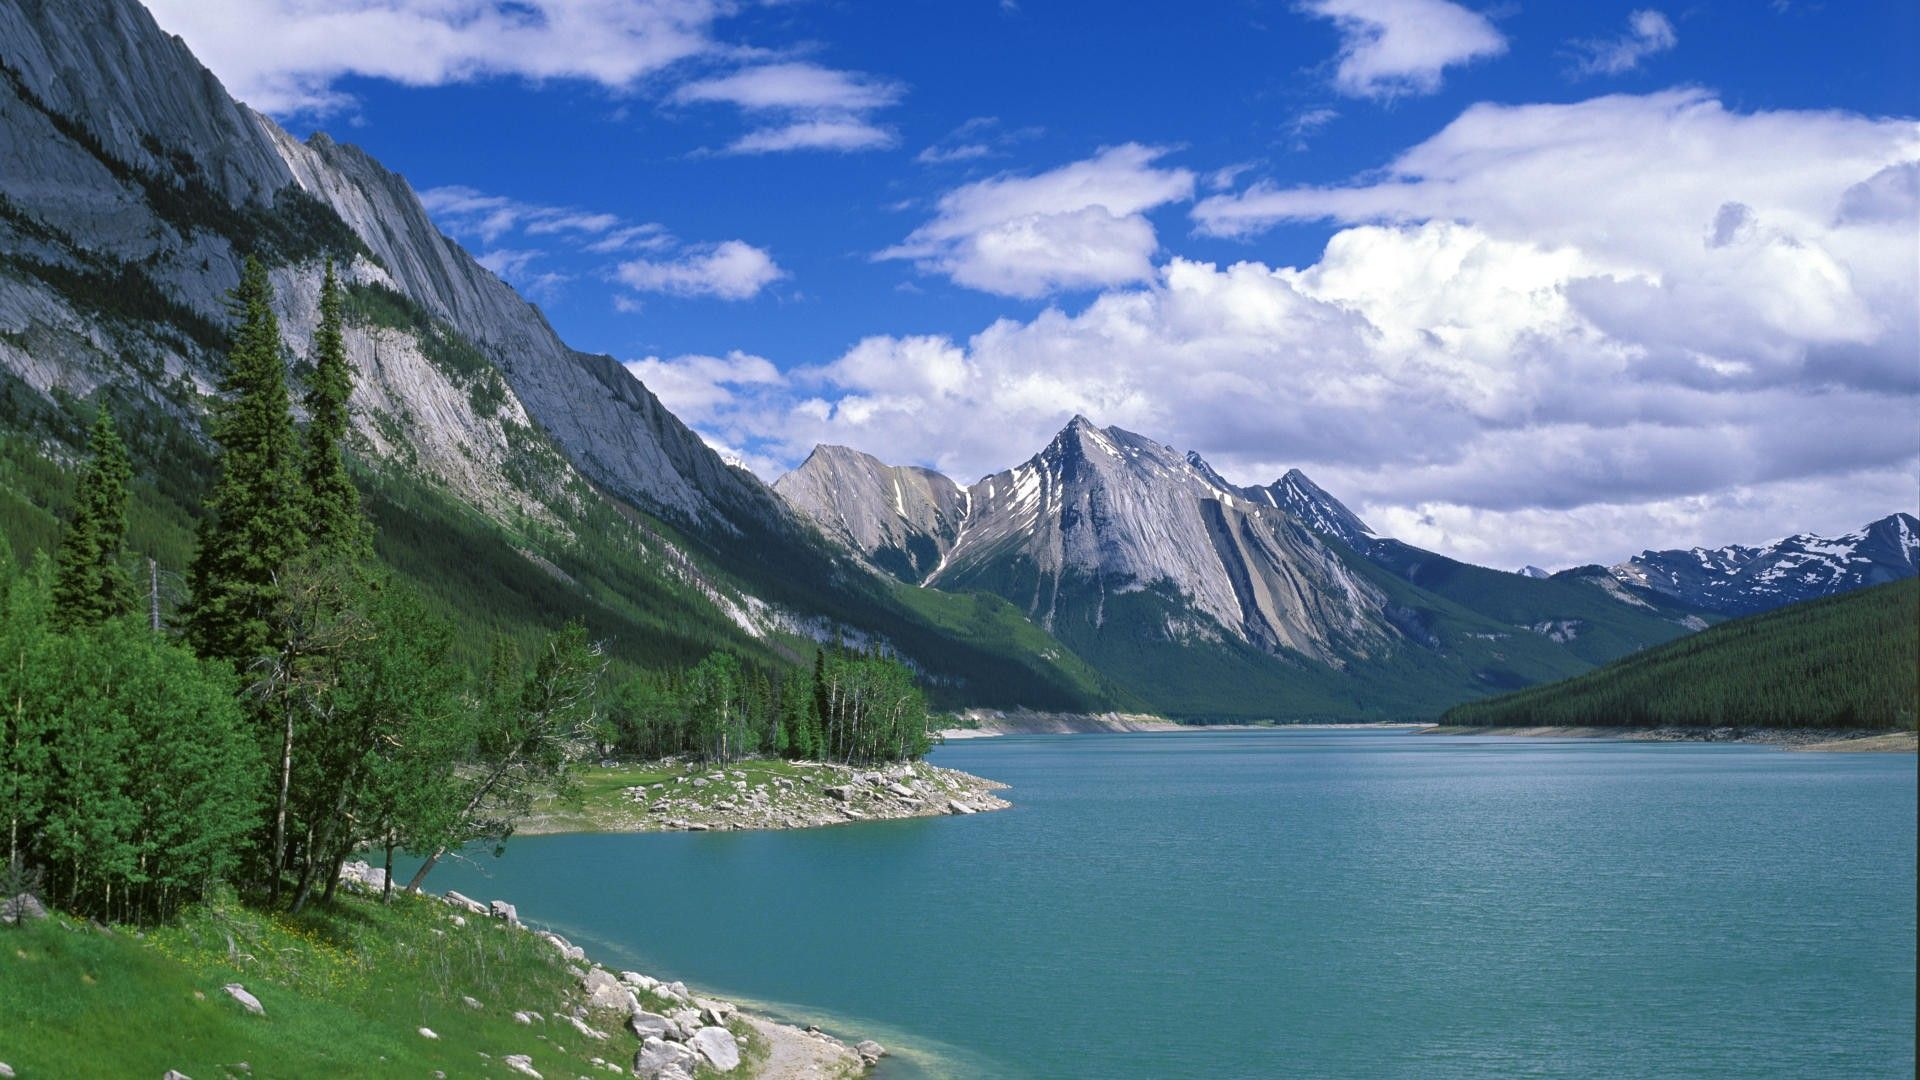 landscapes-medicine-canada-alberta-lakes-national-park-jasper-national-park-HD-Wallpapers.jpg (1920×1080)